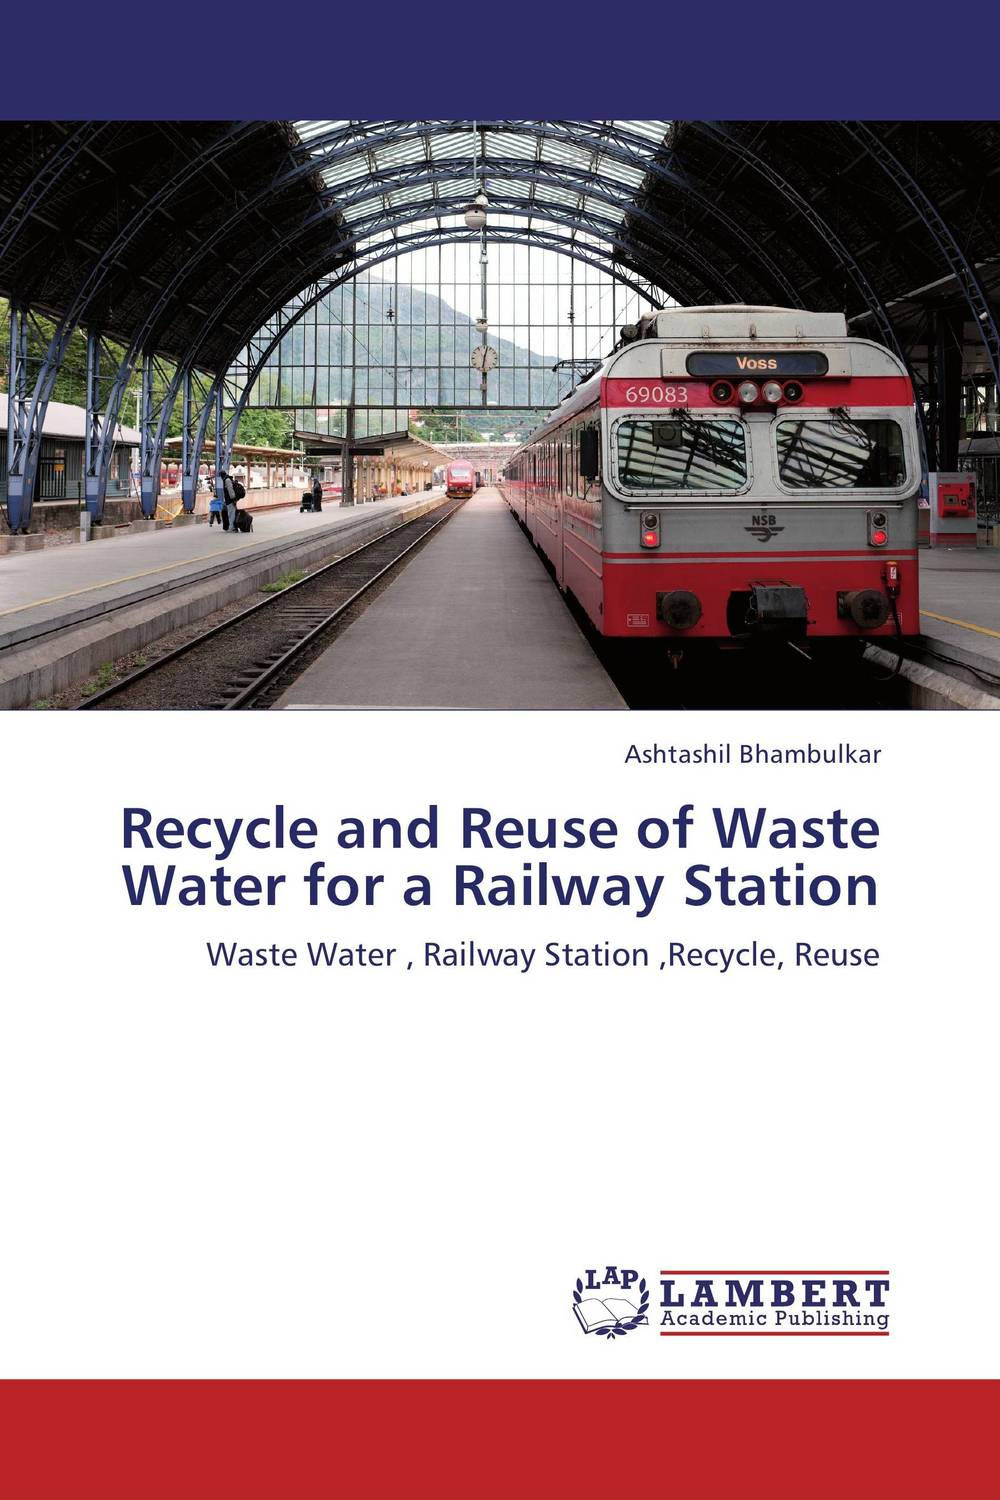 Recycle and Reuse of Waste Water for a Railway Station